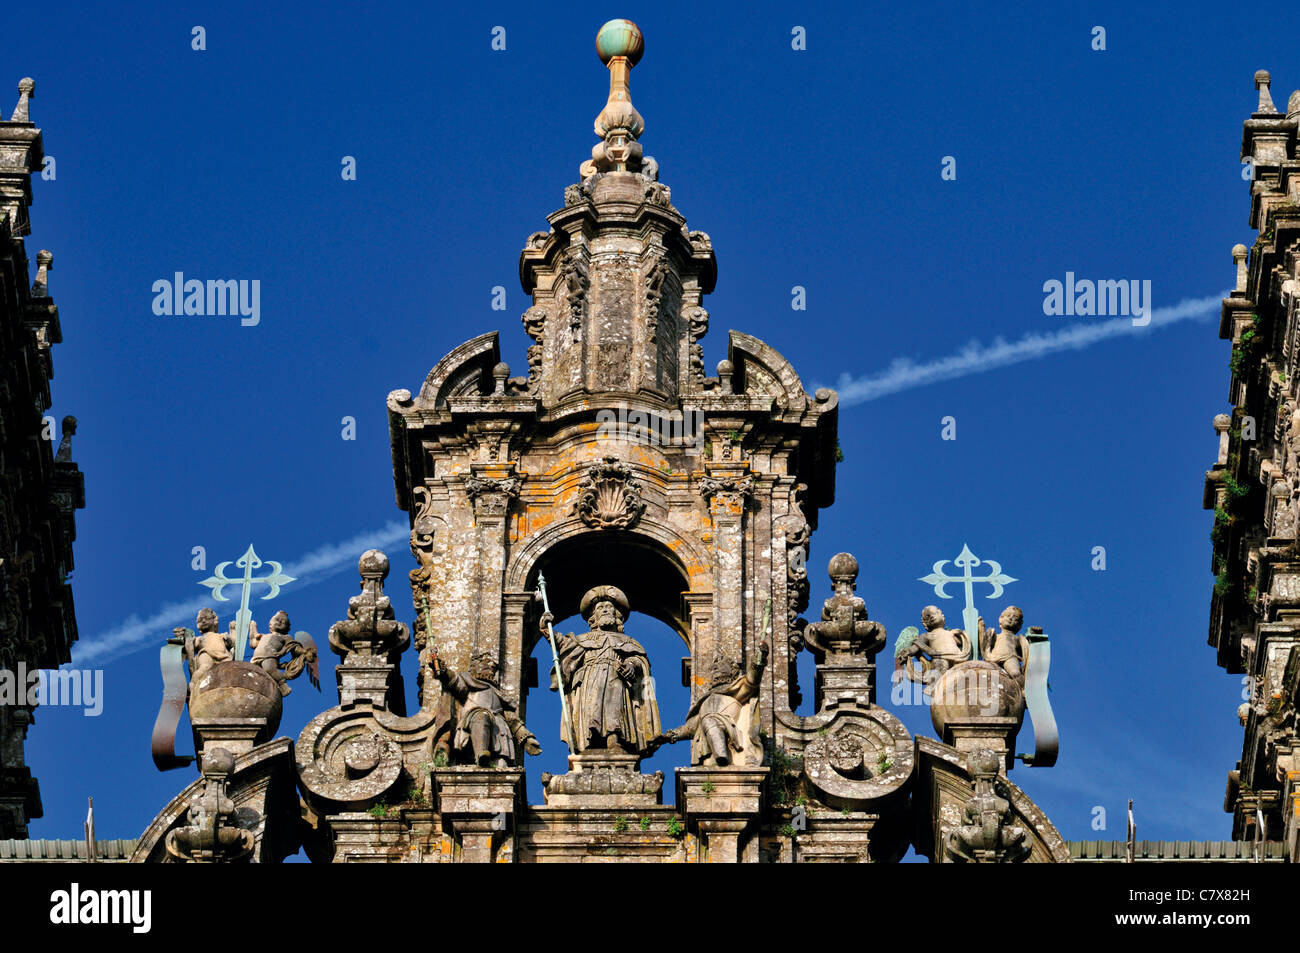 Spain, St. James Way: Detail of the western facade of the Cathedral of Santiago de Compostela - Stock Image